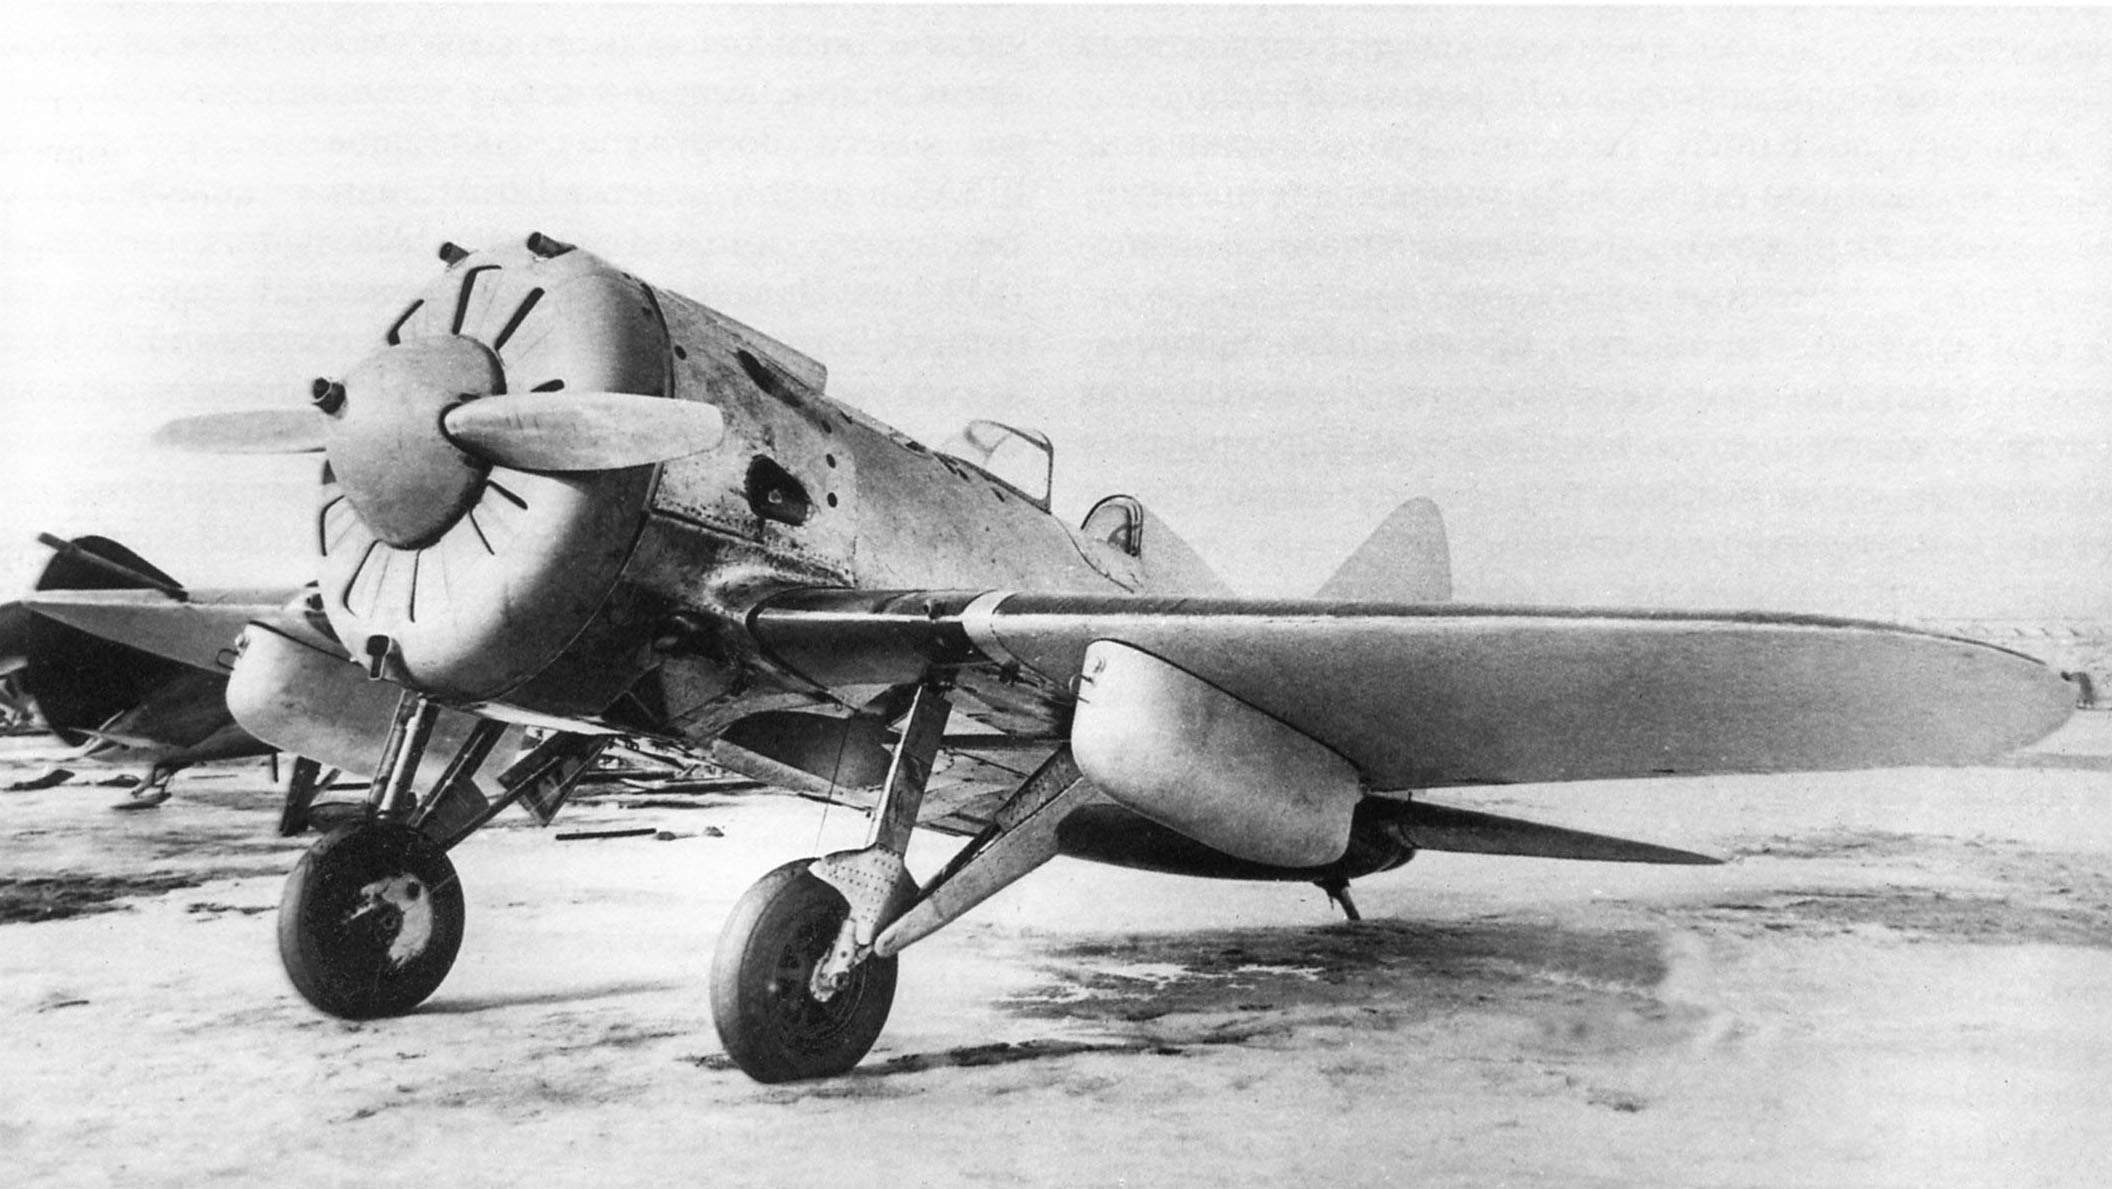 Polikarpov I-16 type 20 (# 1021681, type 10 with two 200l fuel tanks)